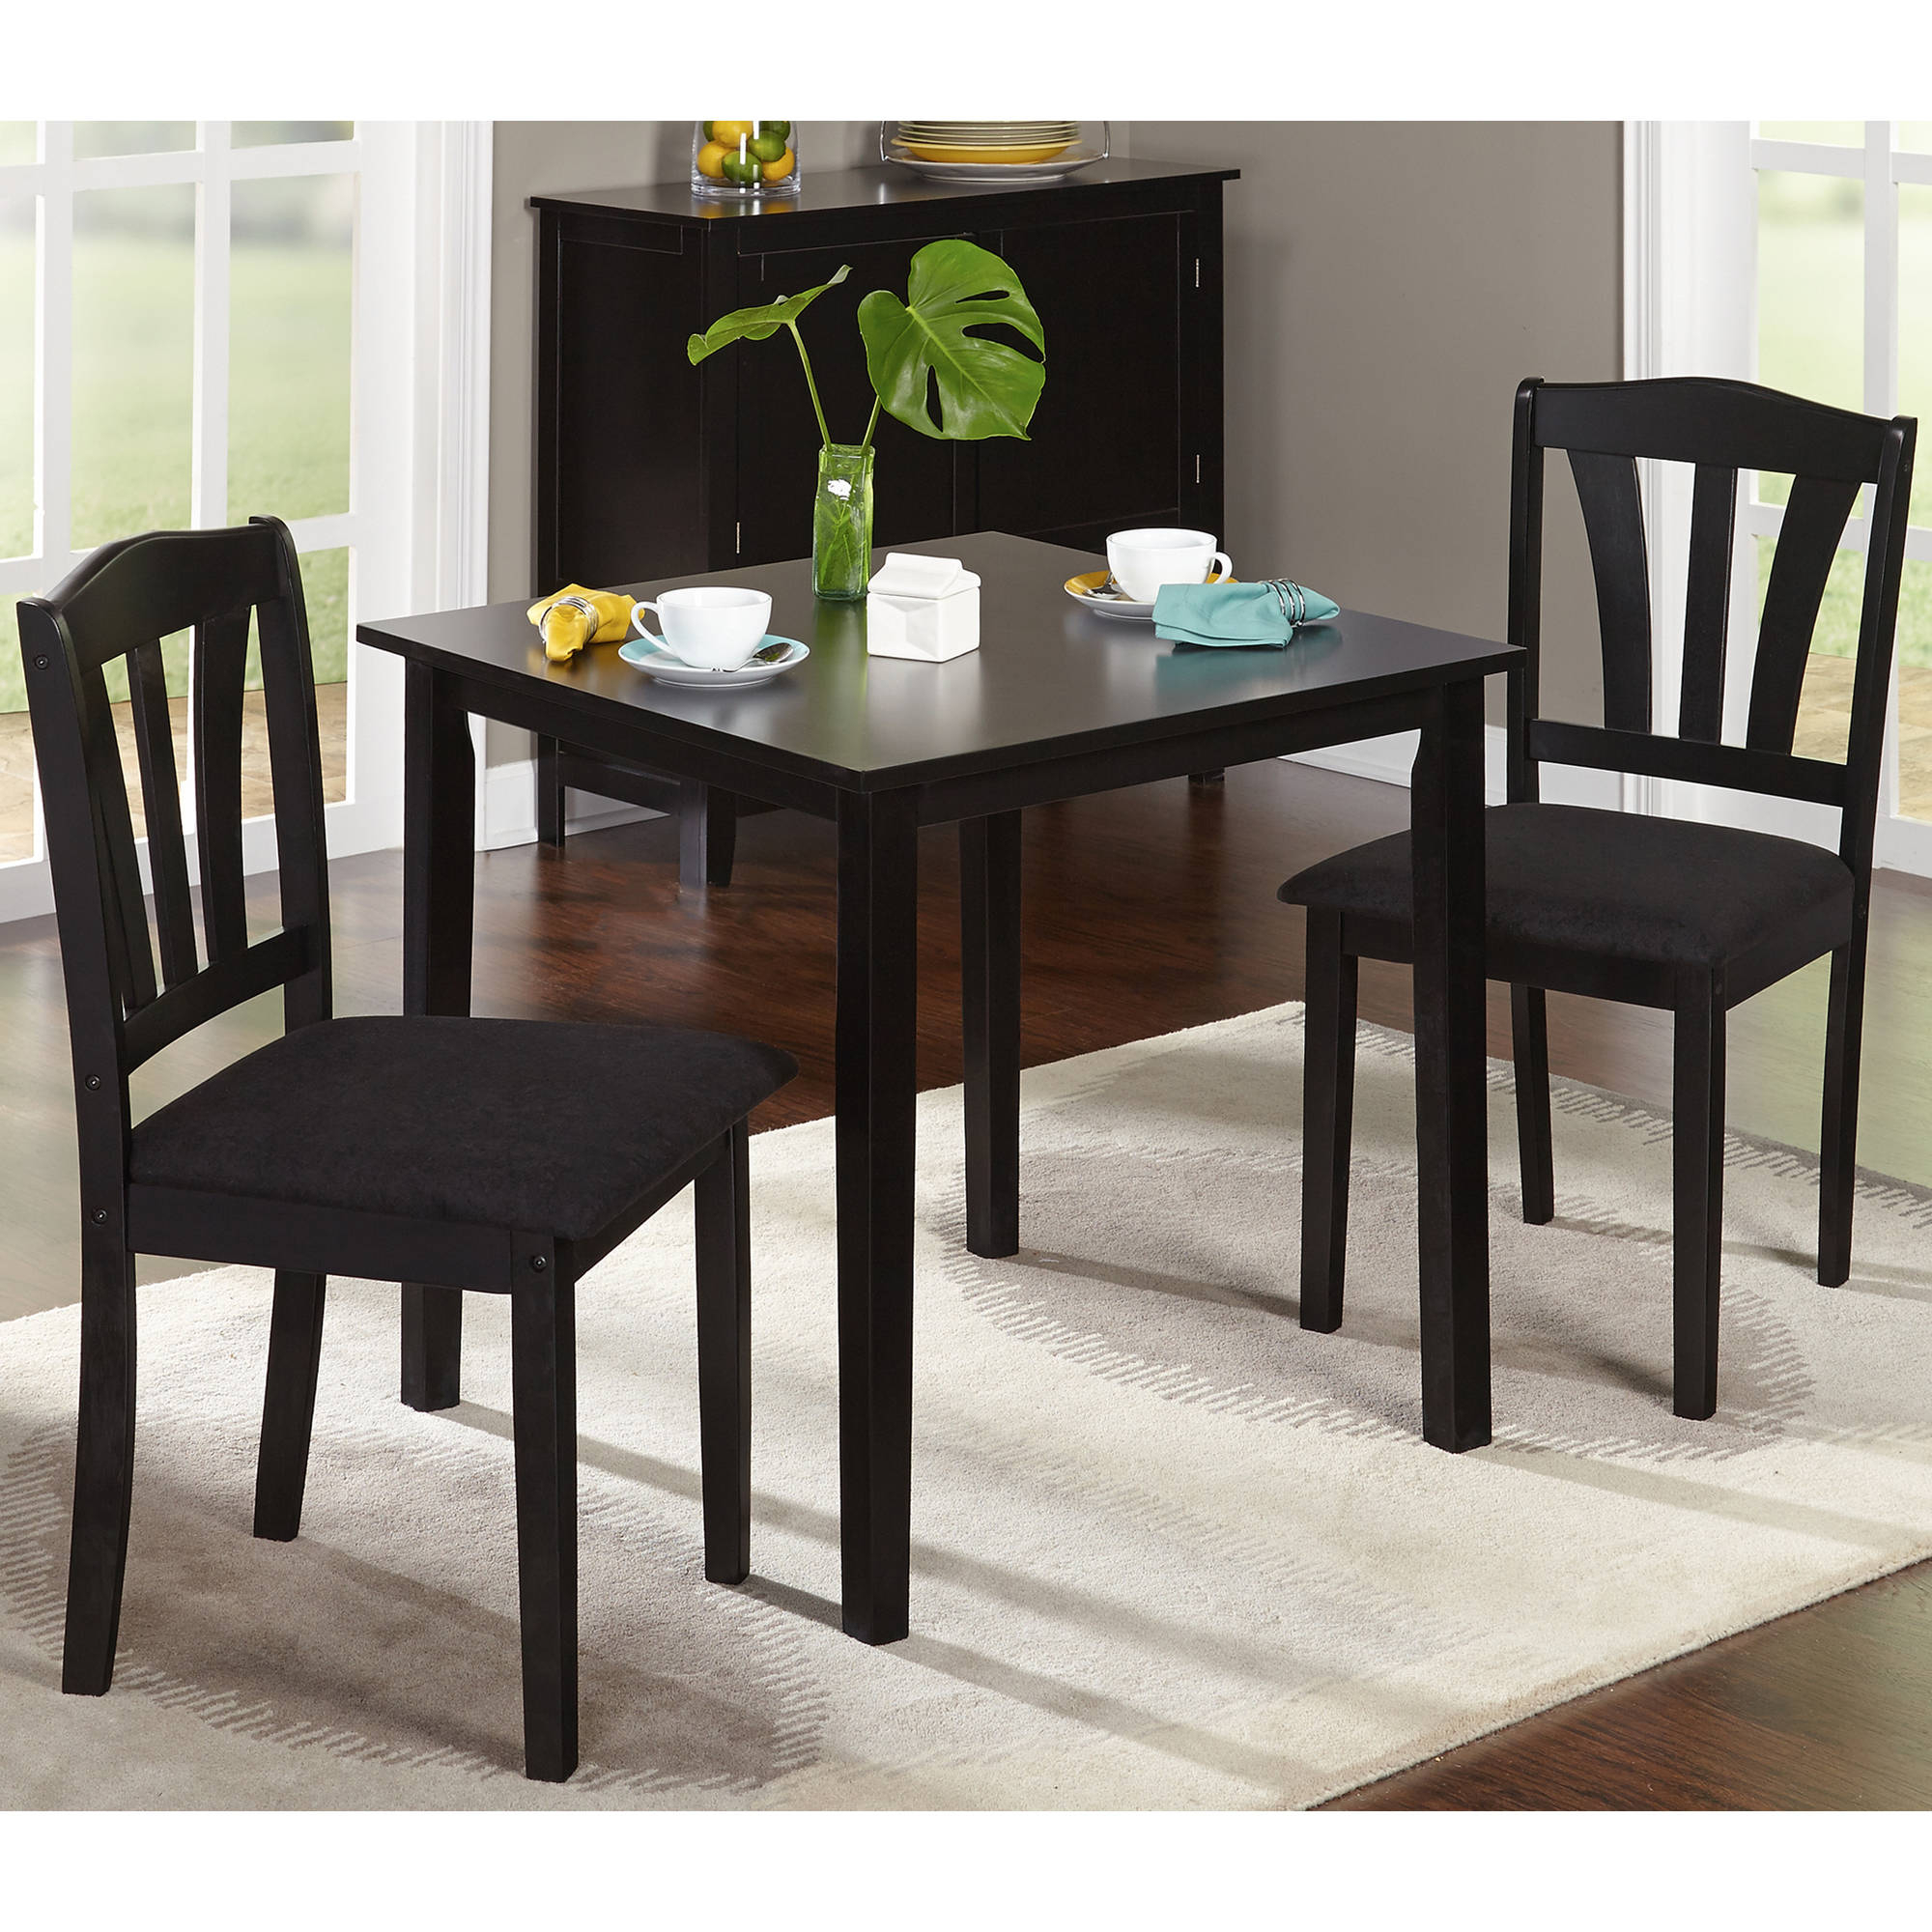 Preferred 3 Piece Dining Sets Regarding Metropolitan 3 Piece Dining Set, Multiple Finishes (View 1 of 20)